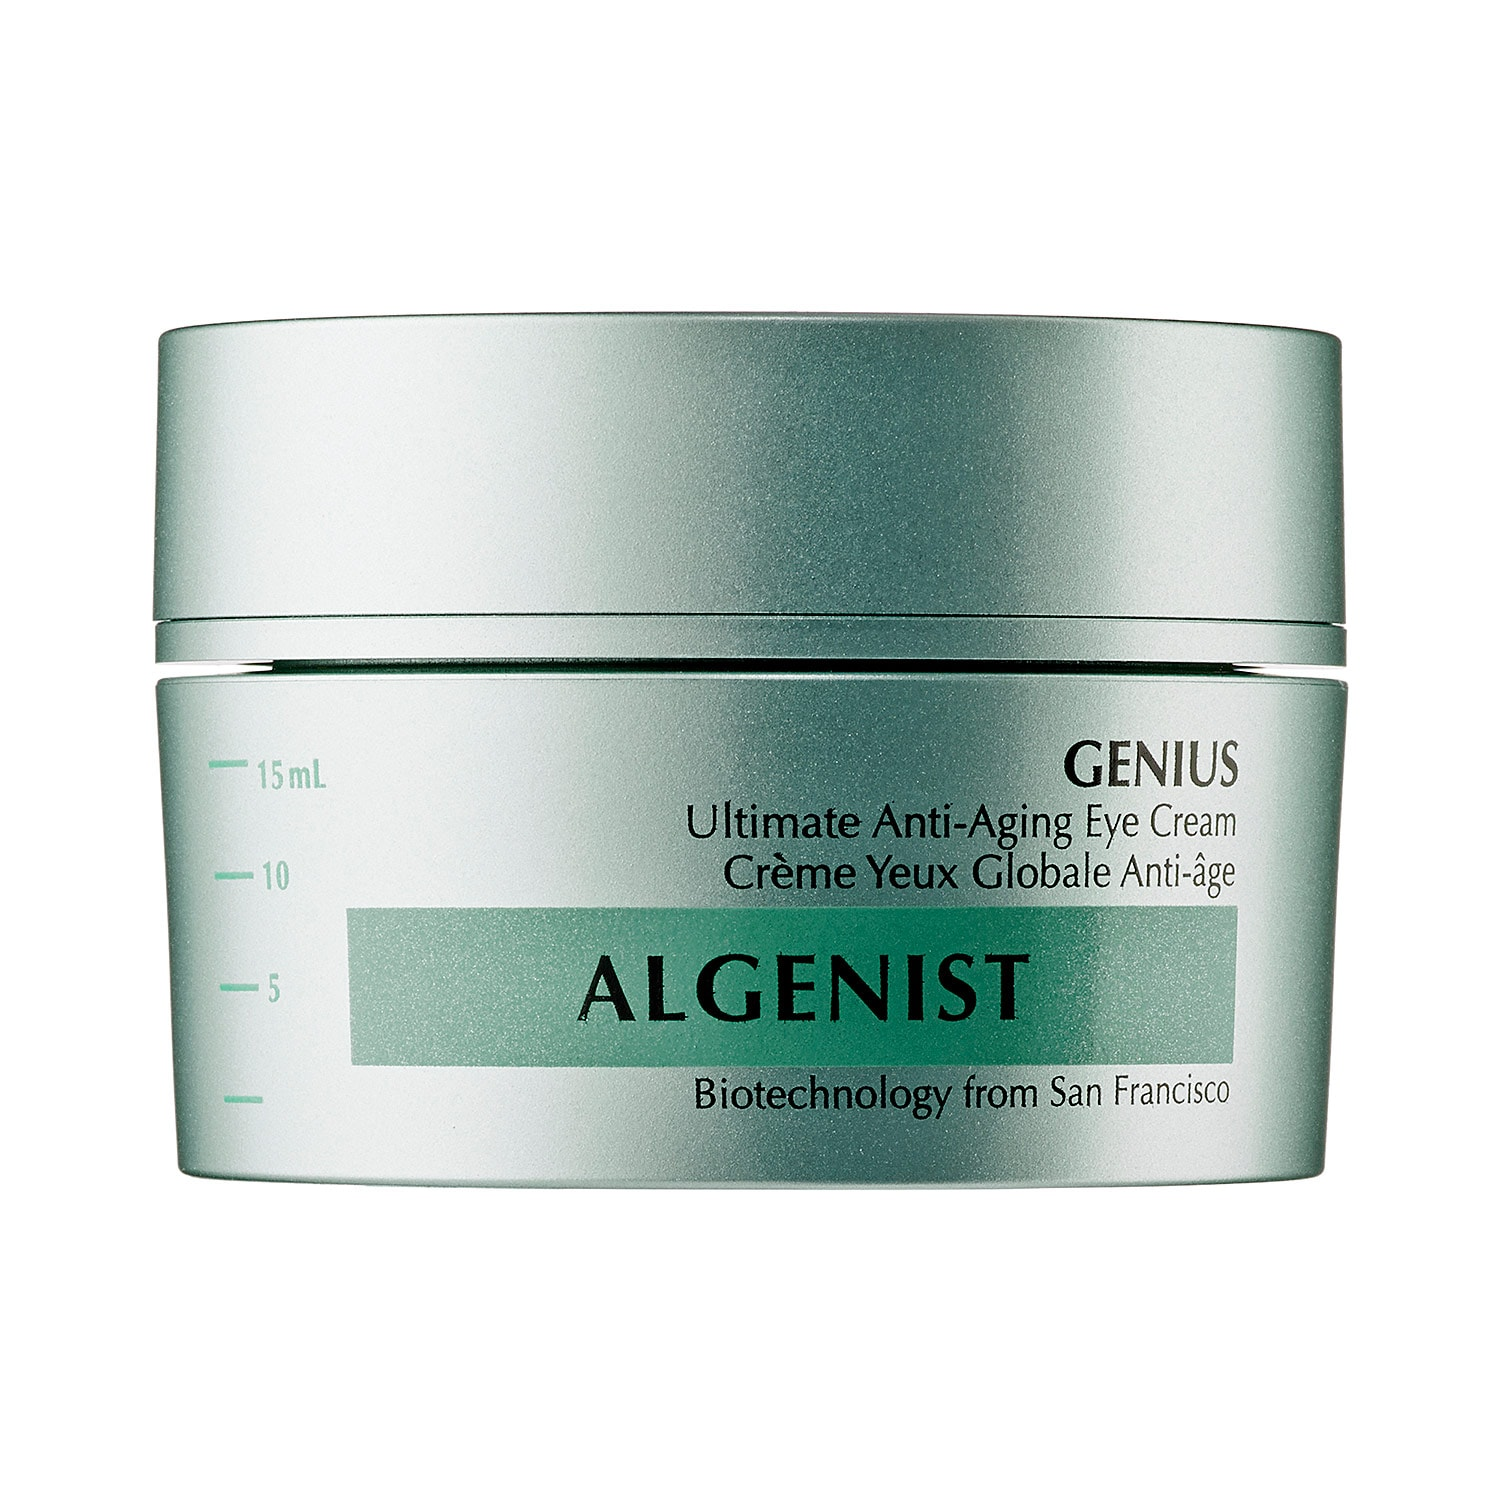 Algenist Genius Ultimate Anti-Aging Eye Cream